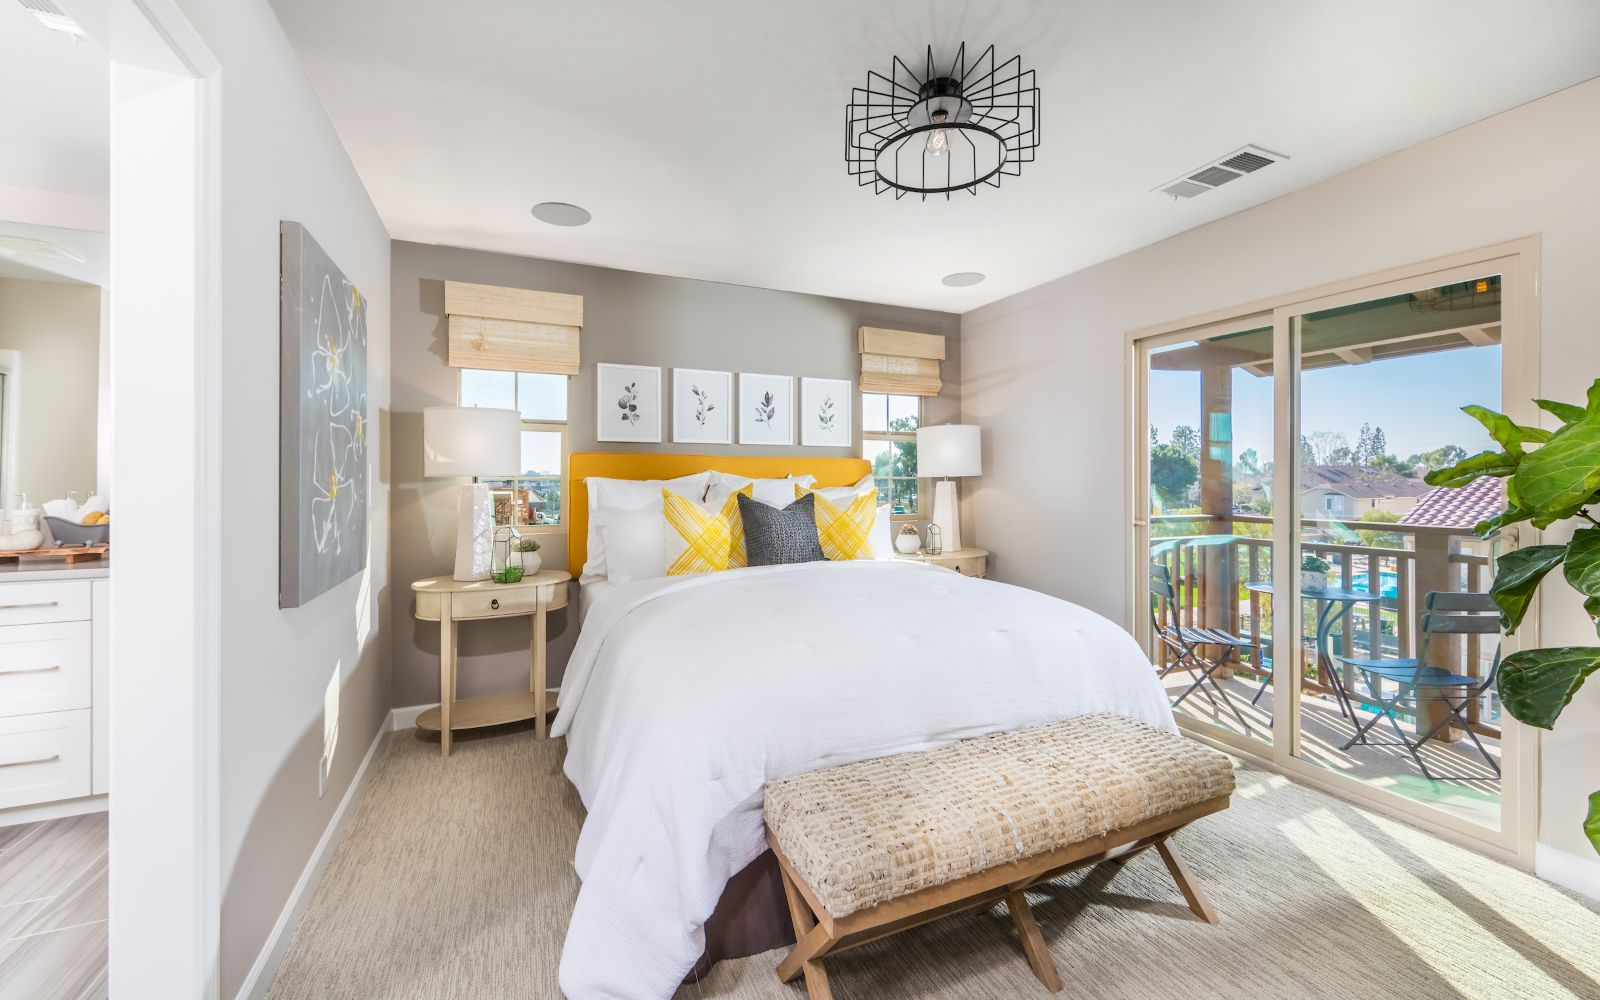 Gardens Plan 3 Master Bedroom| Lantana @Beach in Stanton, CA | Brookfield Residential